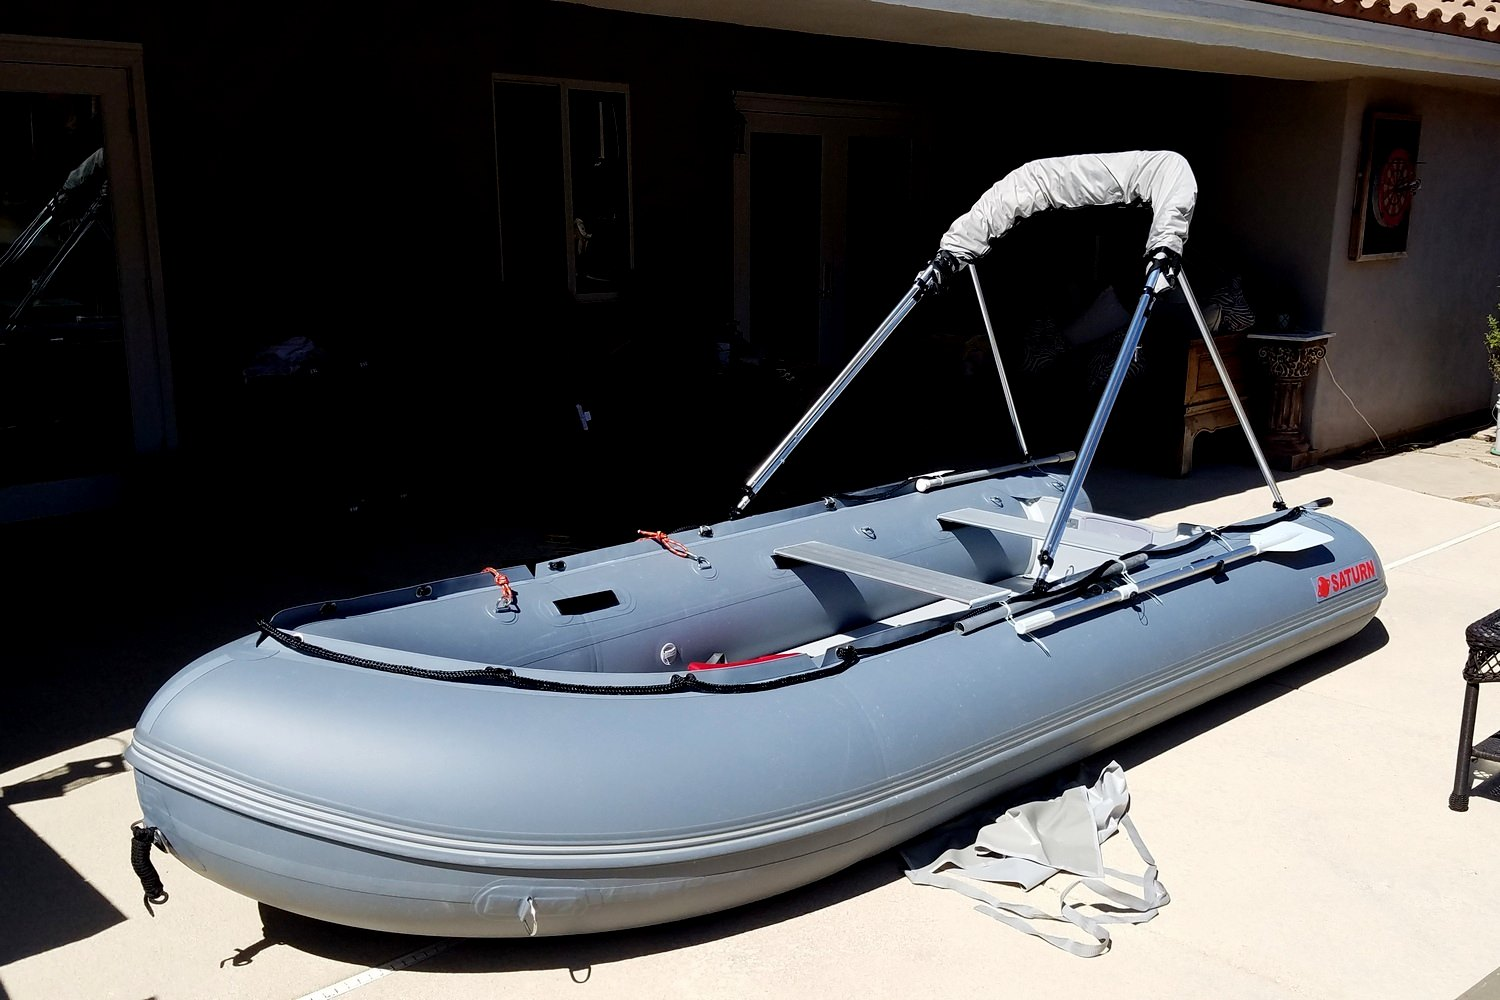 Saturn Inflatable Boat KaBoat ZK430XL